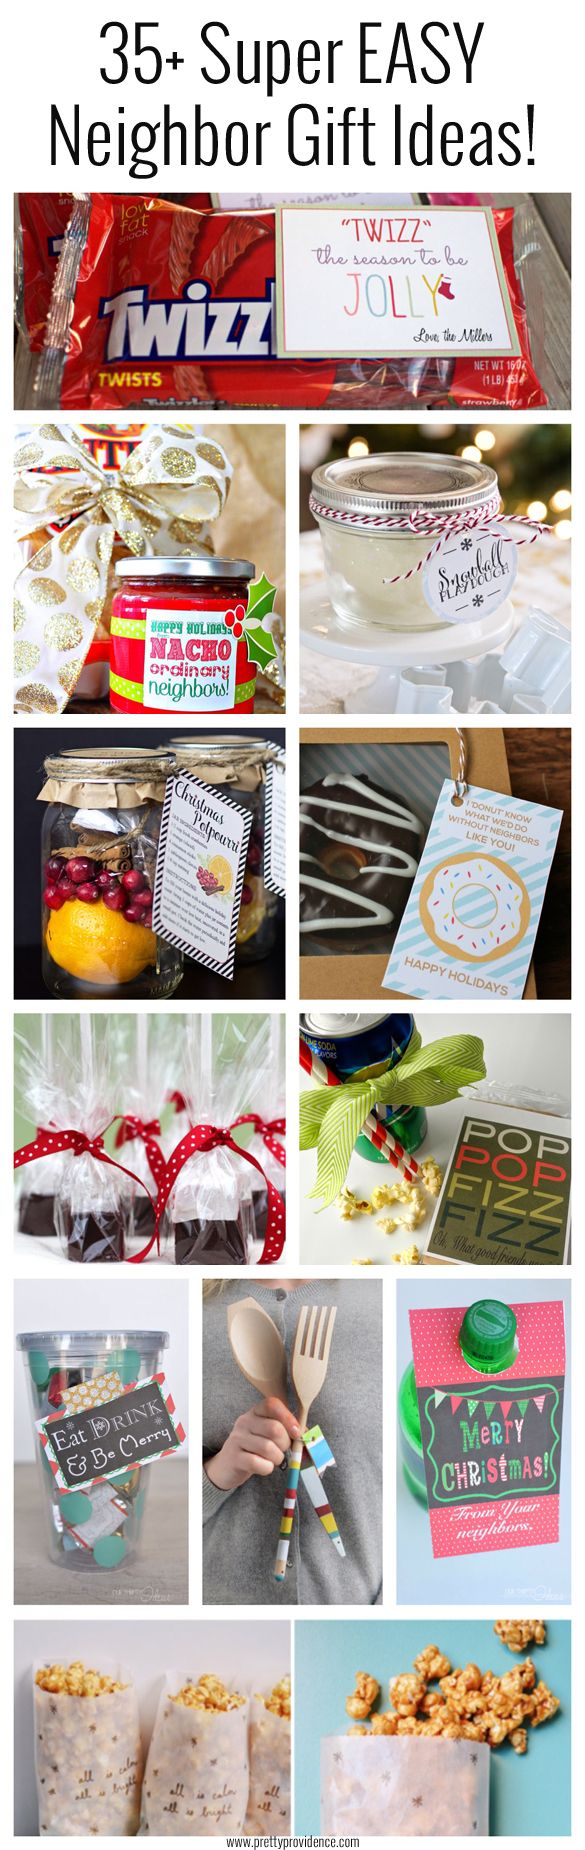 I LOVE all these neighbor gift ideas! Nothing beats cute, thoughtful and EASY! Best list I've seen...